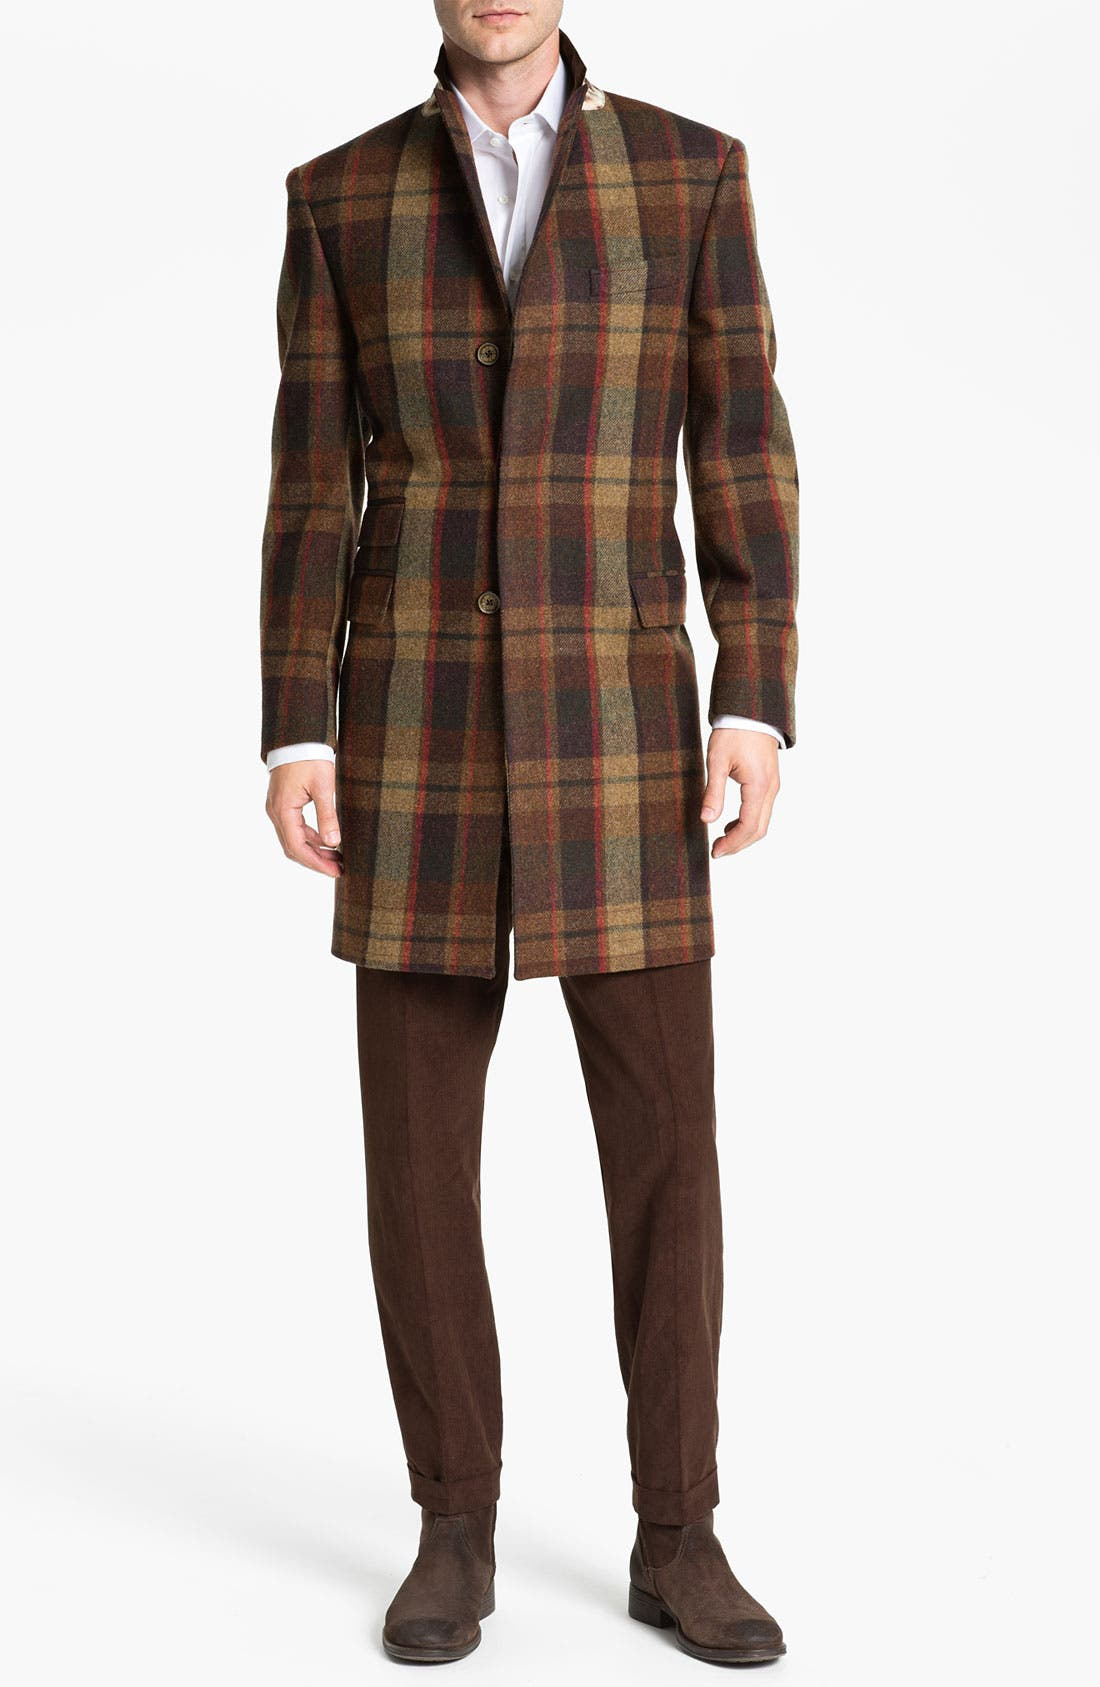 Alternate Image 1 Selected - Ted Baker London 'Global' Trim Fit Plaid Top Coat (Online Exclusive)